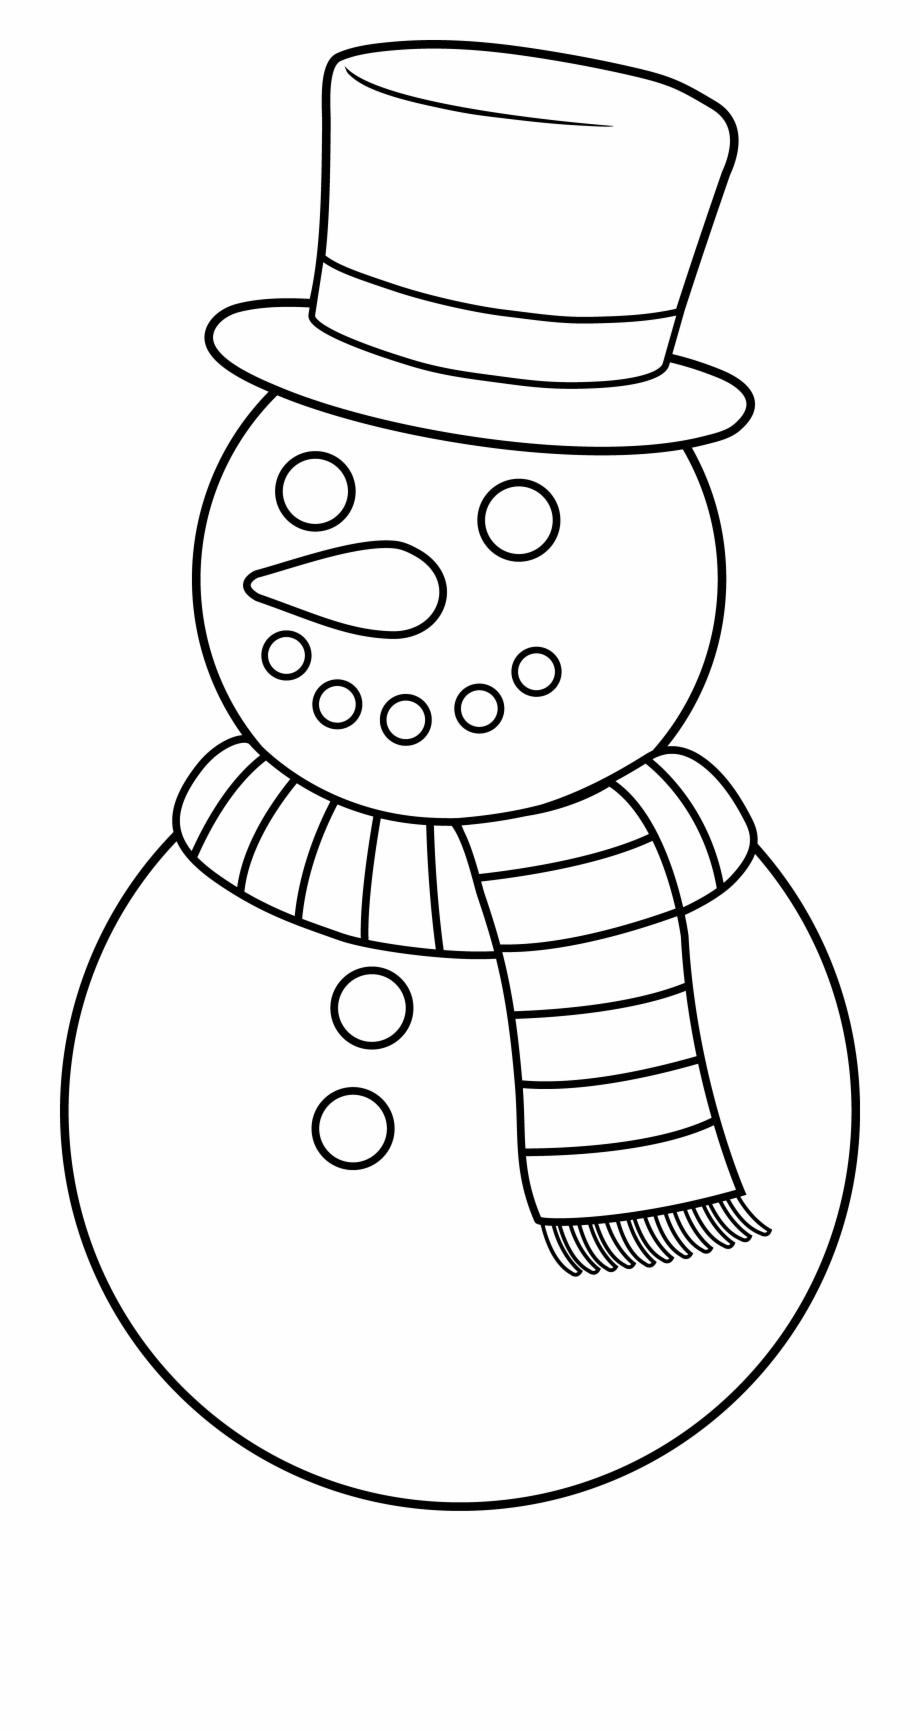 Cat in snow clipart black and white clipart royalty free download Snowman Clipart Outline - Snow Man Clip Art Black And White Free PNG ... clipart royalty free download